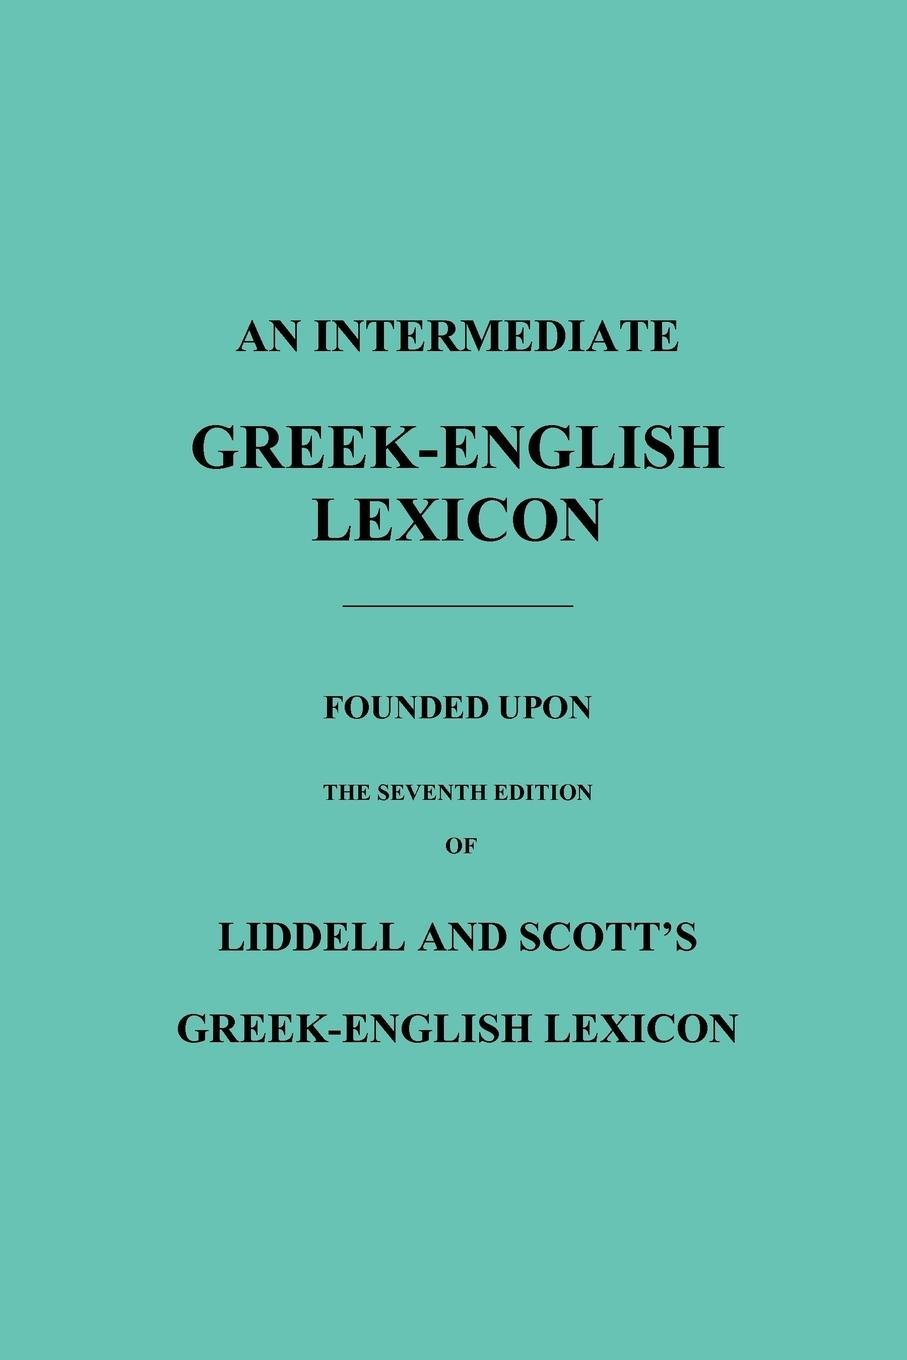 An Intermediate Greek-English Lexicon: Founded Upon the Seventh Edition of Liddell and Scott's Greek-English Lexicon PDF Text fb2 ebook